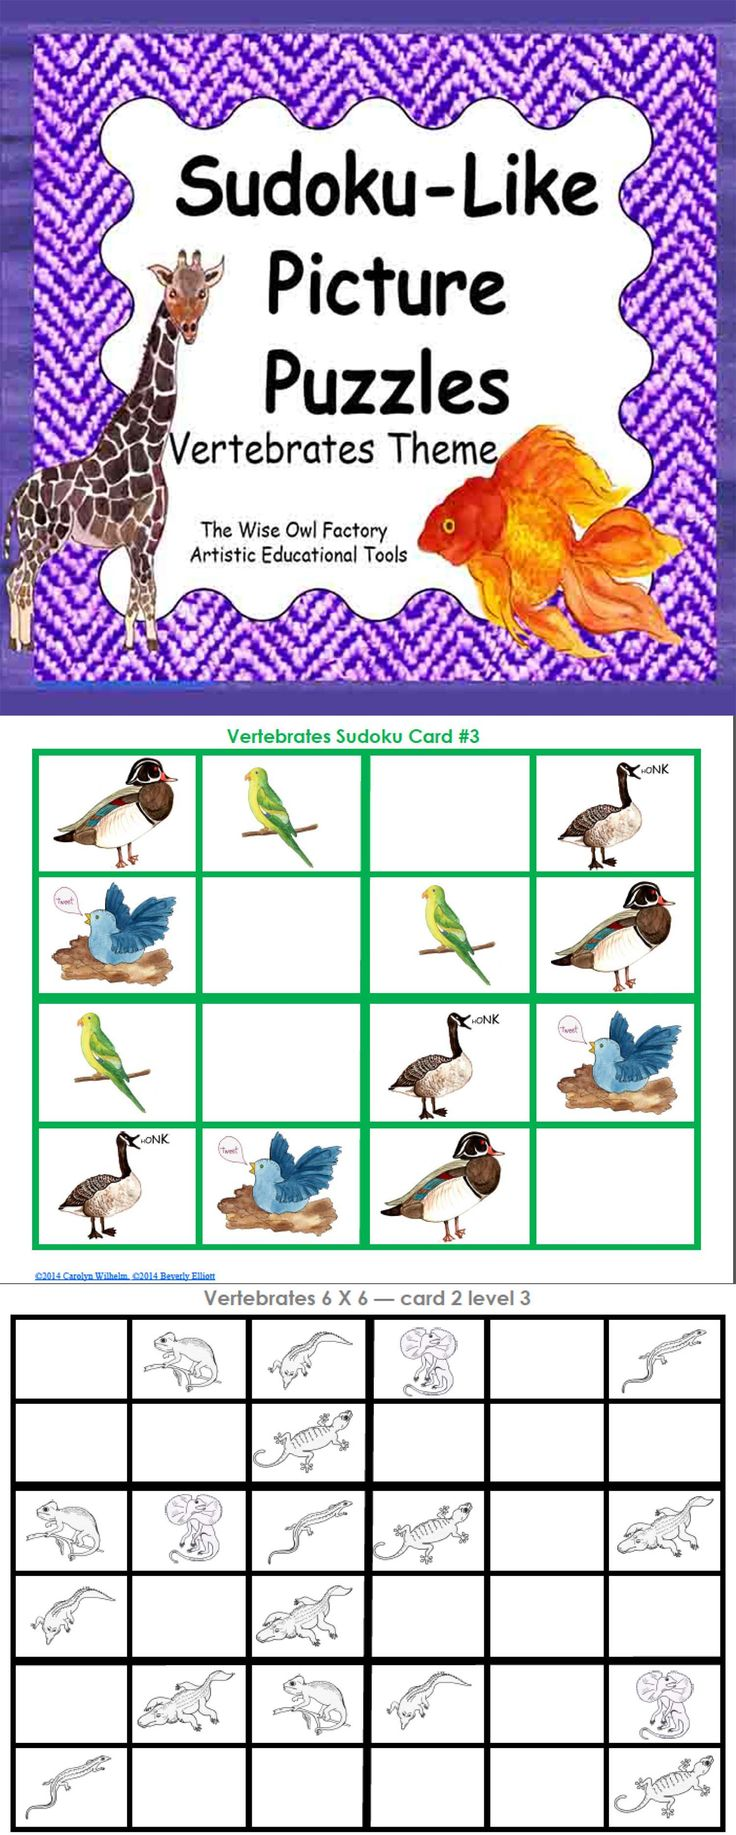 Worksheet Activity Village Sudoku 1000 ideas about web sudoku on pinterest like picture puzzles vertebrates theme 4x4 6x6 8x8 and 9x9 see free puzzles